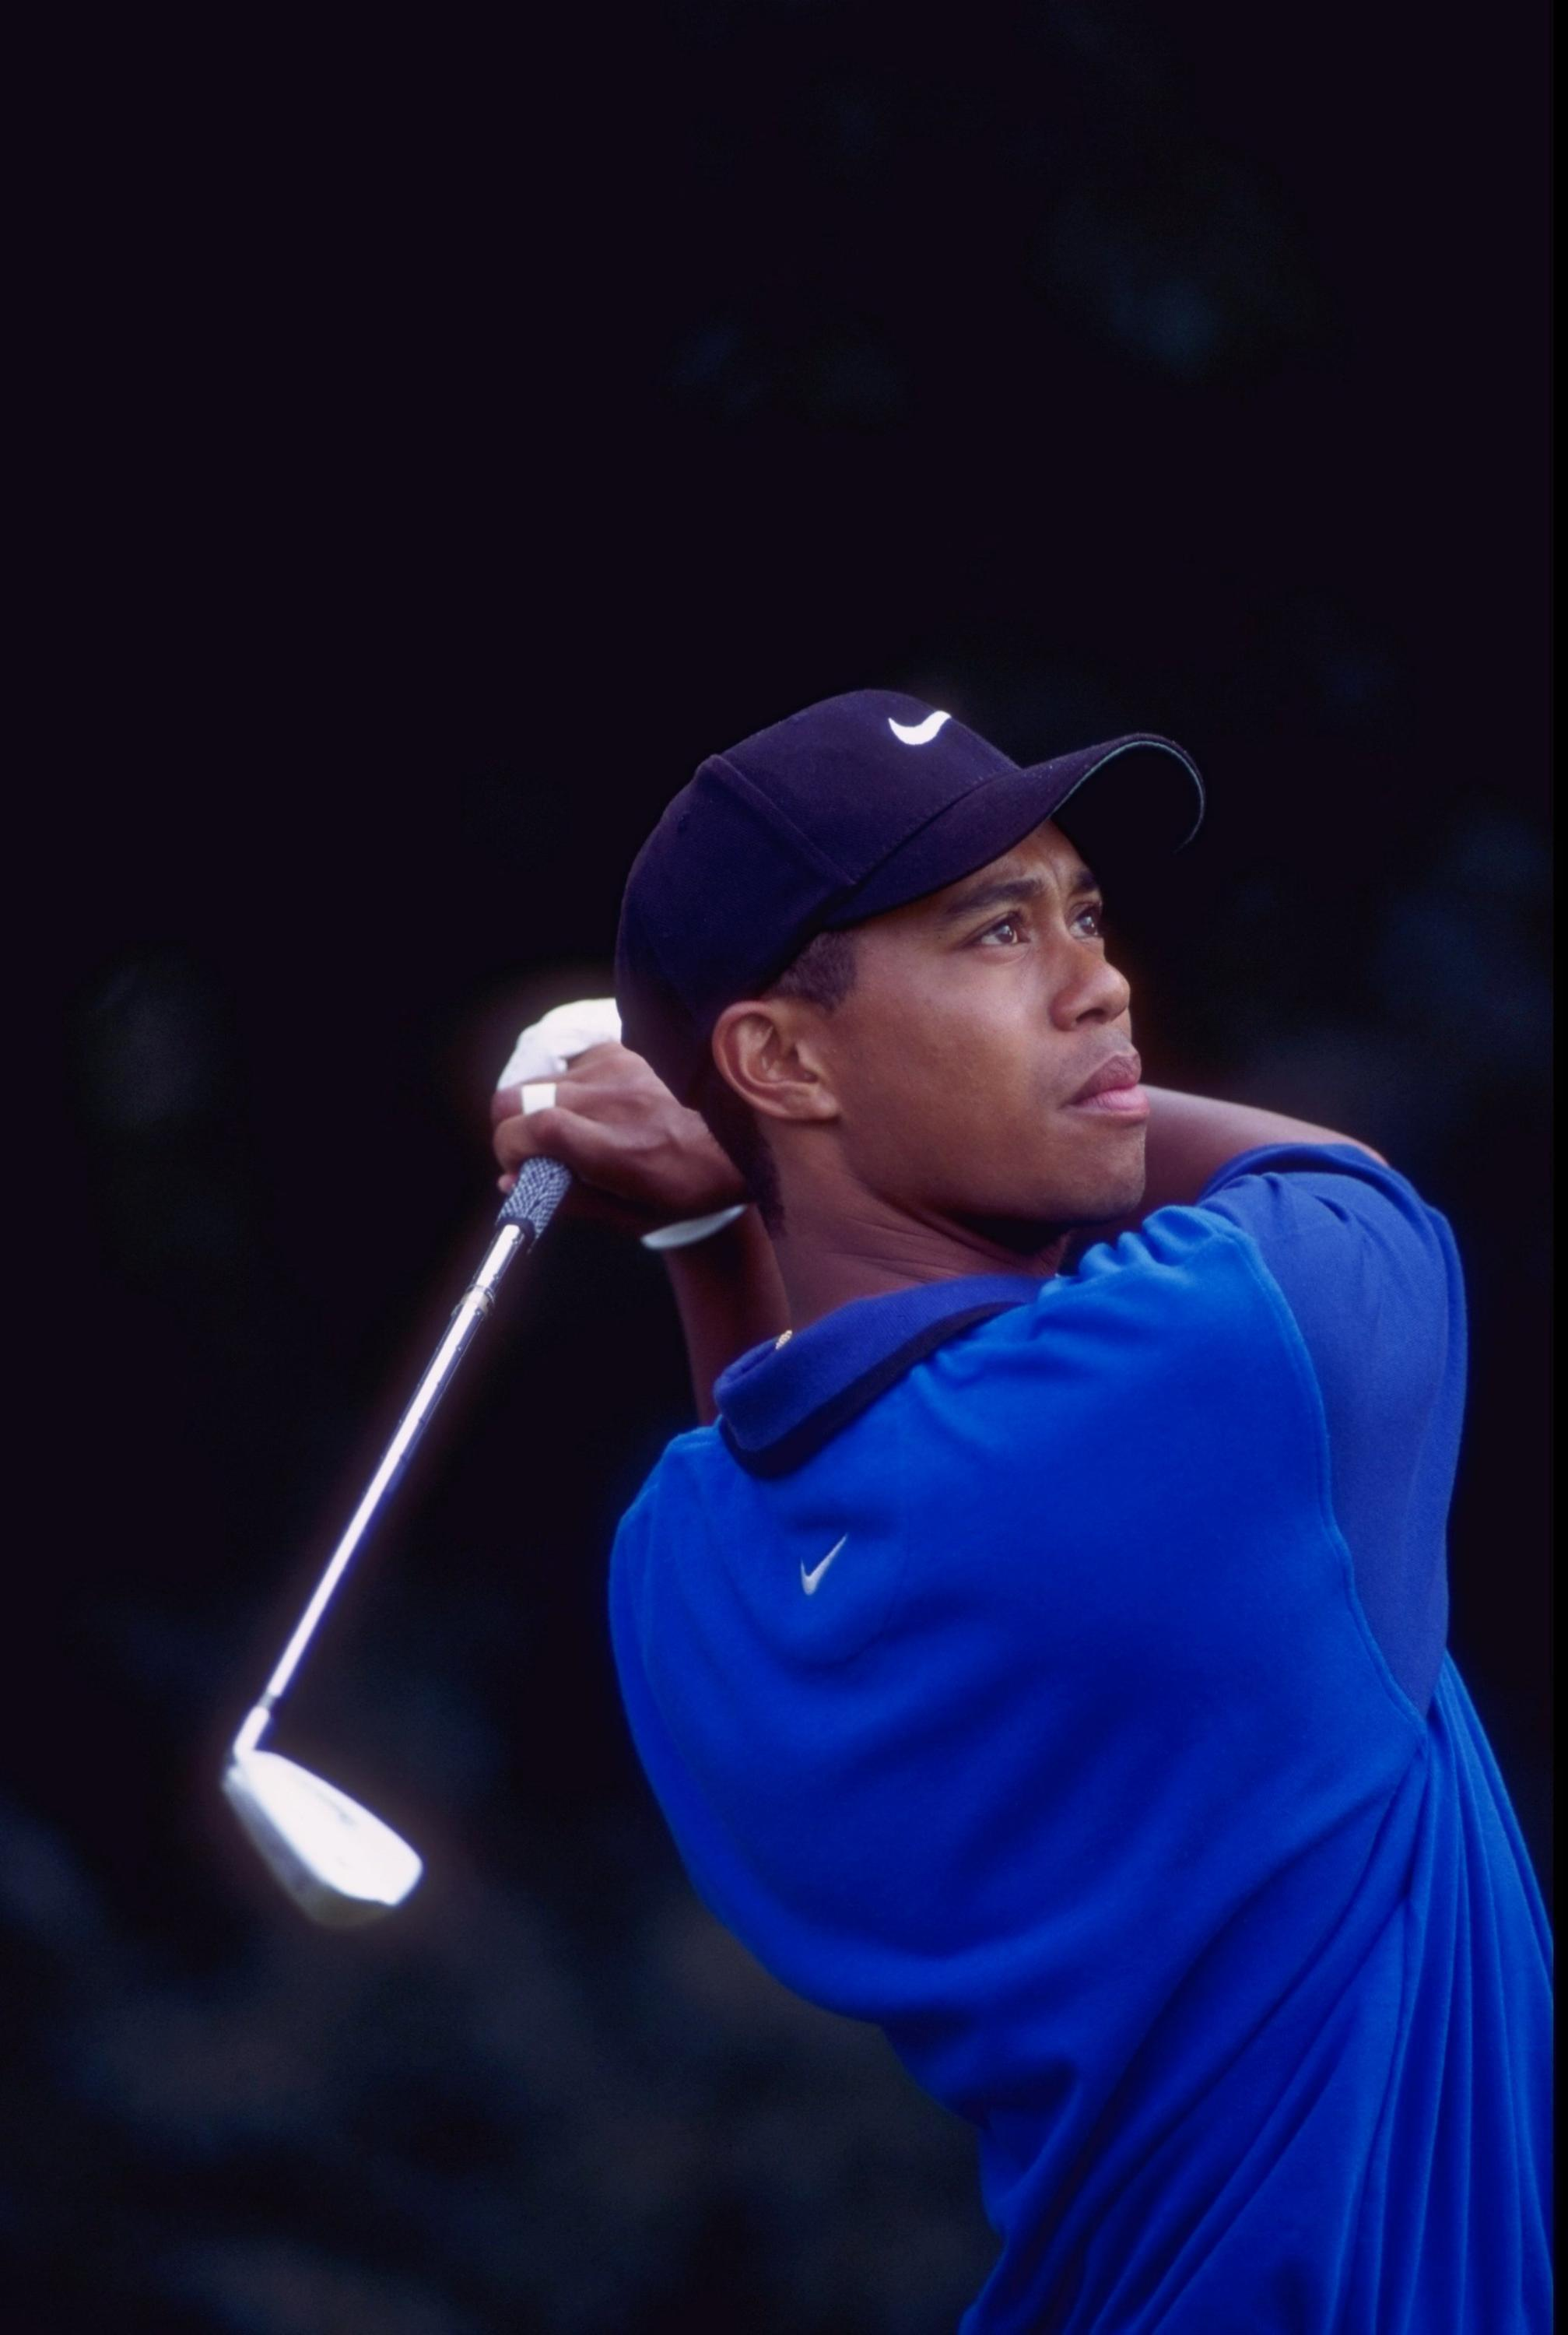 Bild zu Tiger Woods, Greater Milwaukee Open, Glendale, Wisconsin